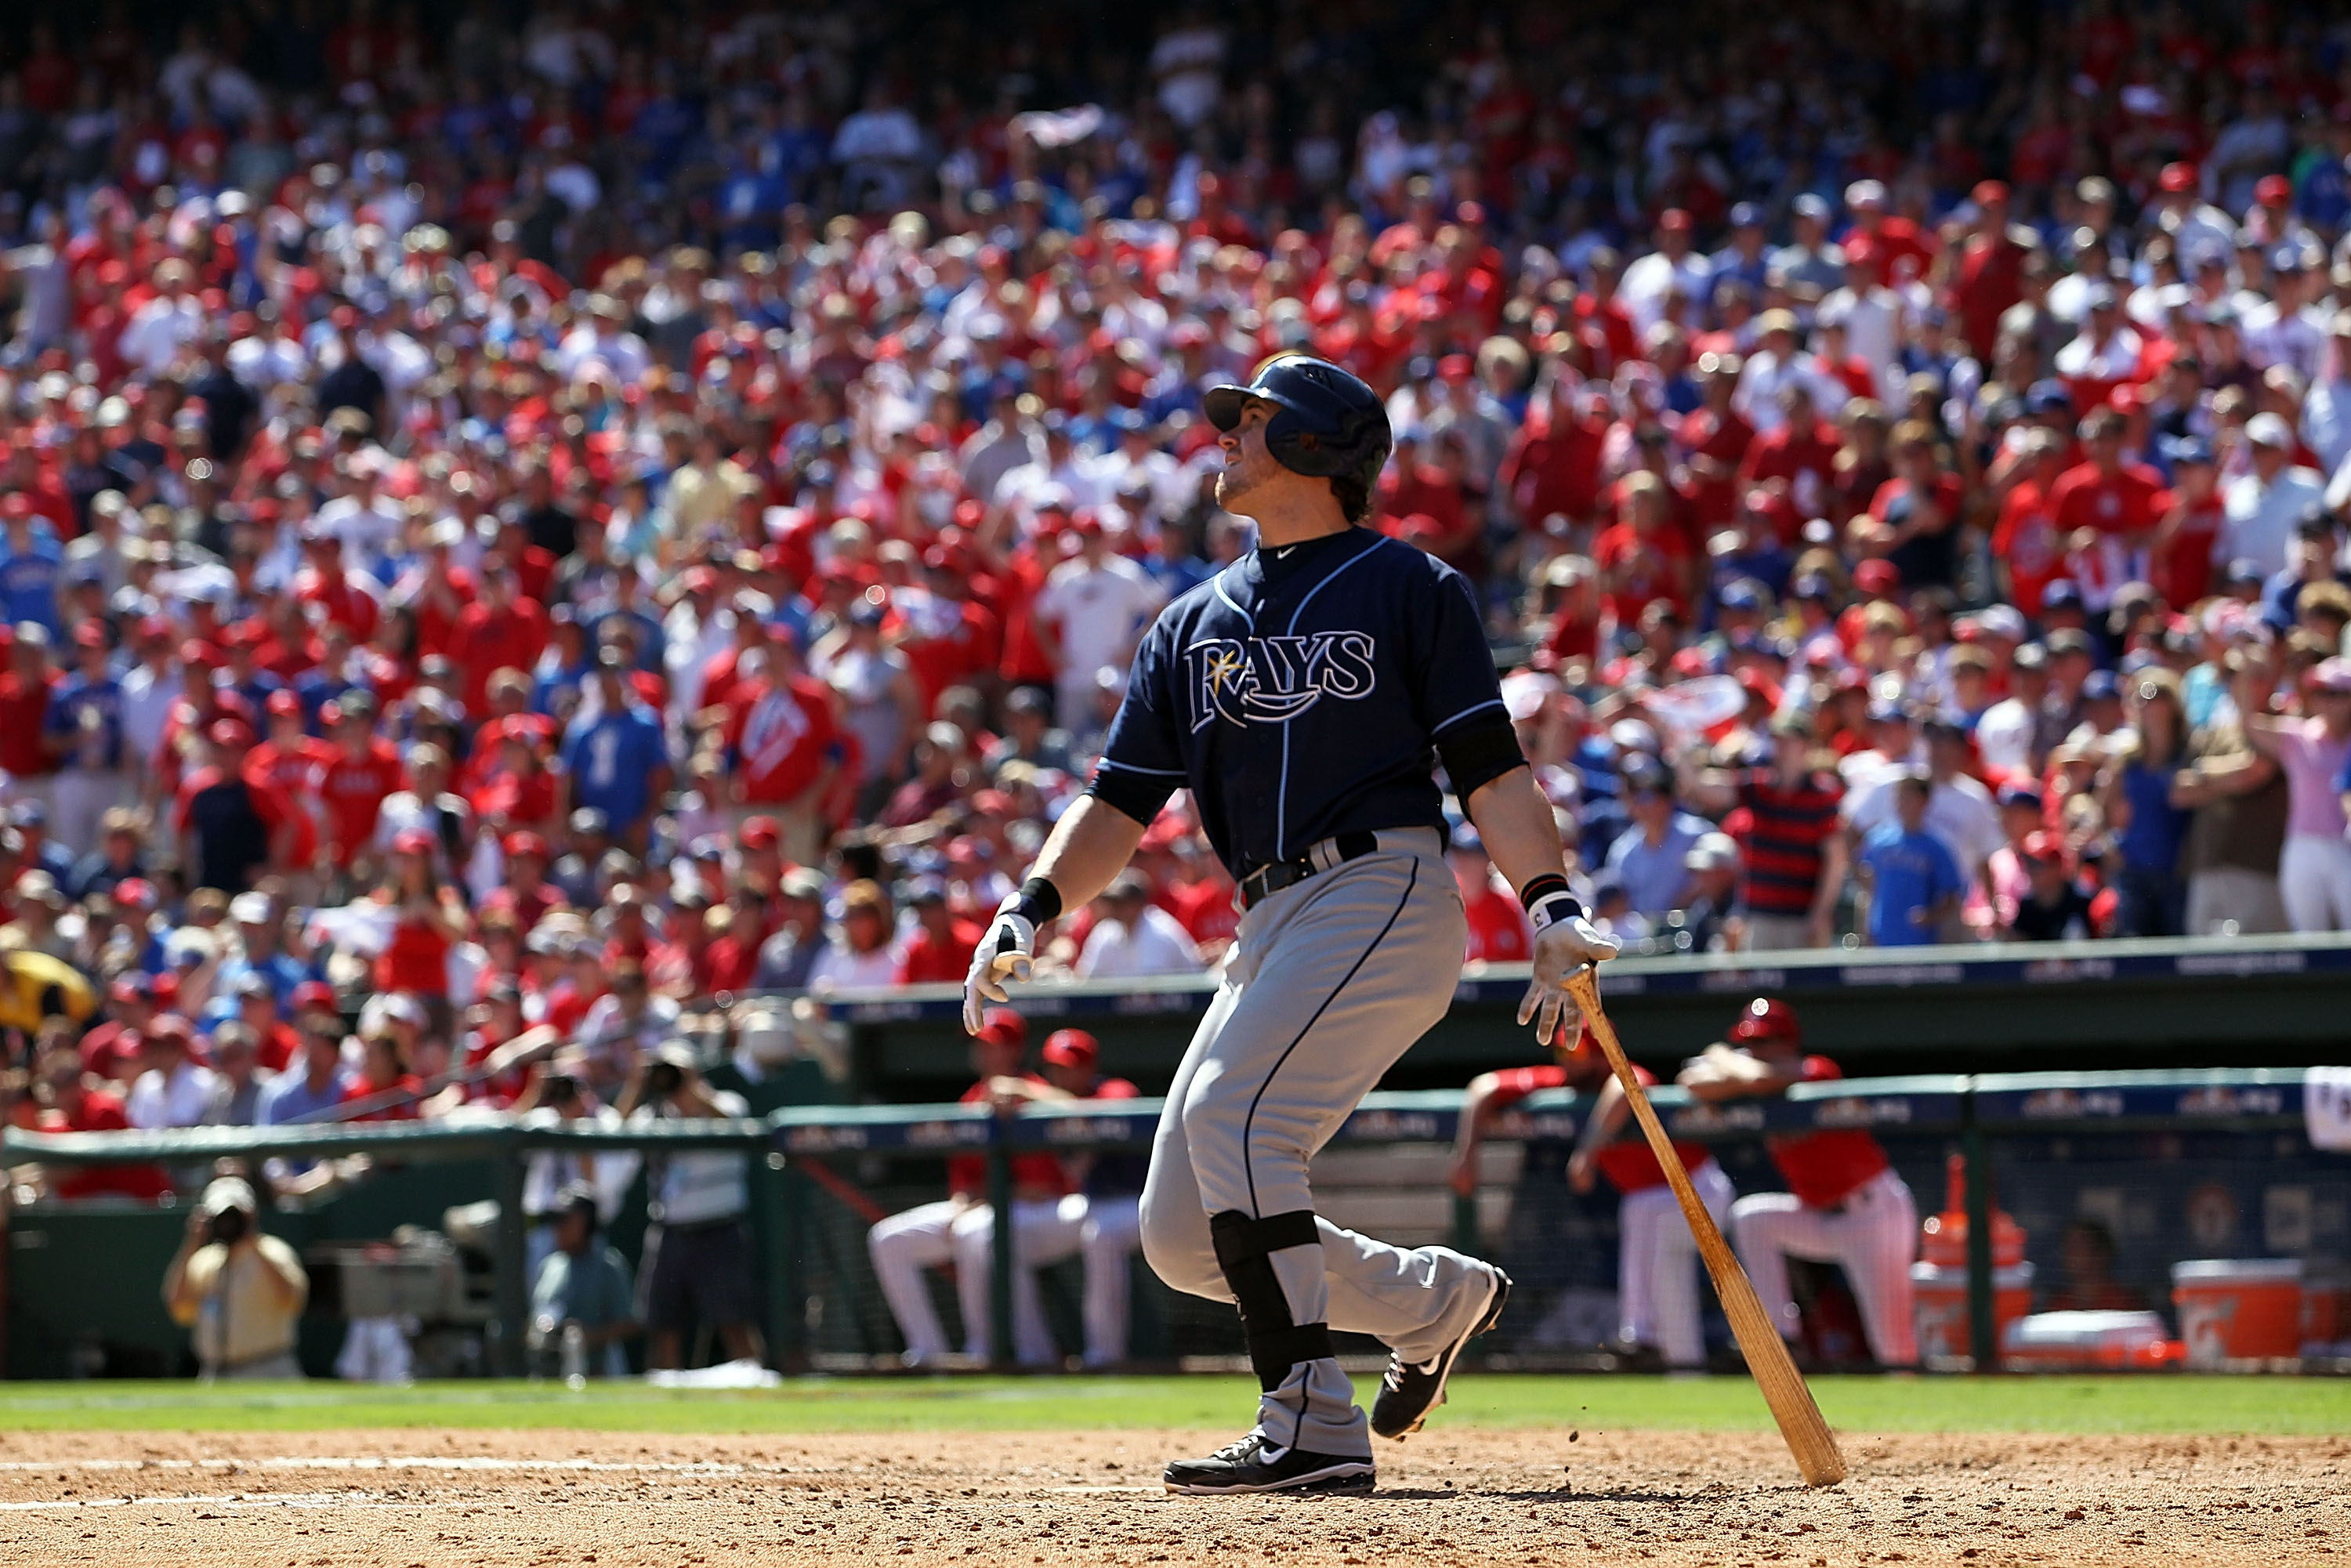 ARLINGTON, TX - OCTOBER 10:  Evan Longoria #3 of the Tampa Bay Rays hits a two run homerun against the Texas Rangers in the 5th inning during game 4 of the ALDS at Rangers Ballpark in Arlington on October 10, 2010 in Arlington, Texas.  (Photo by Ronald Ma